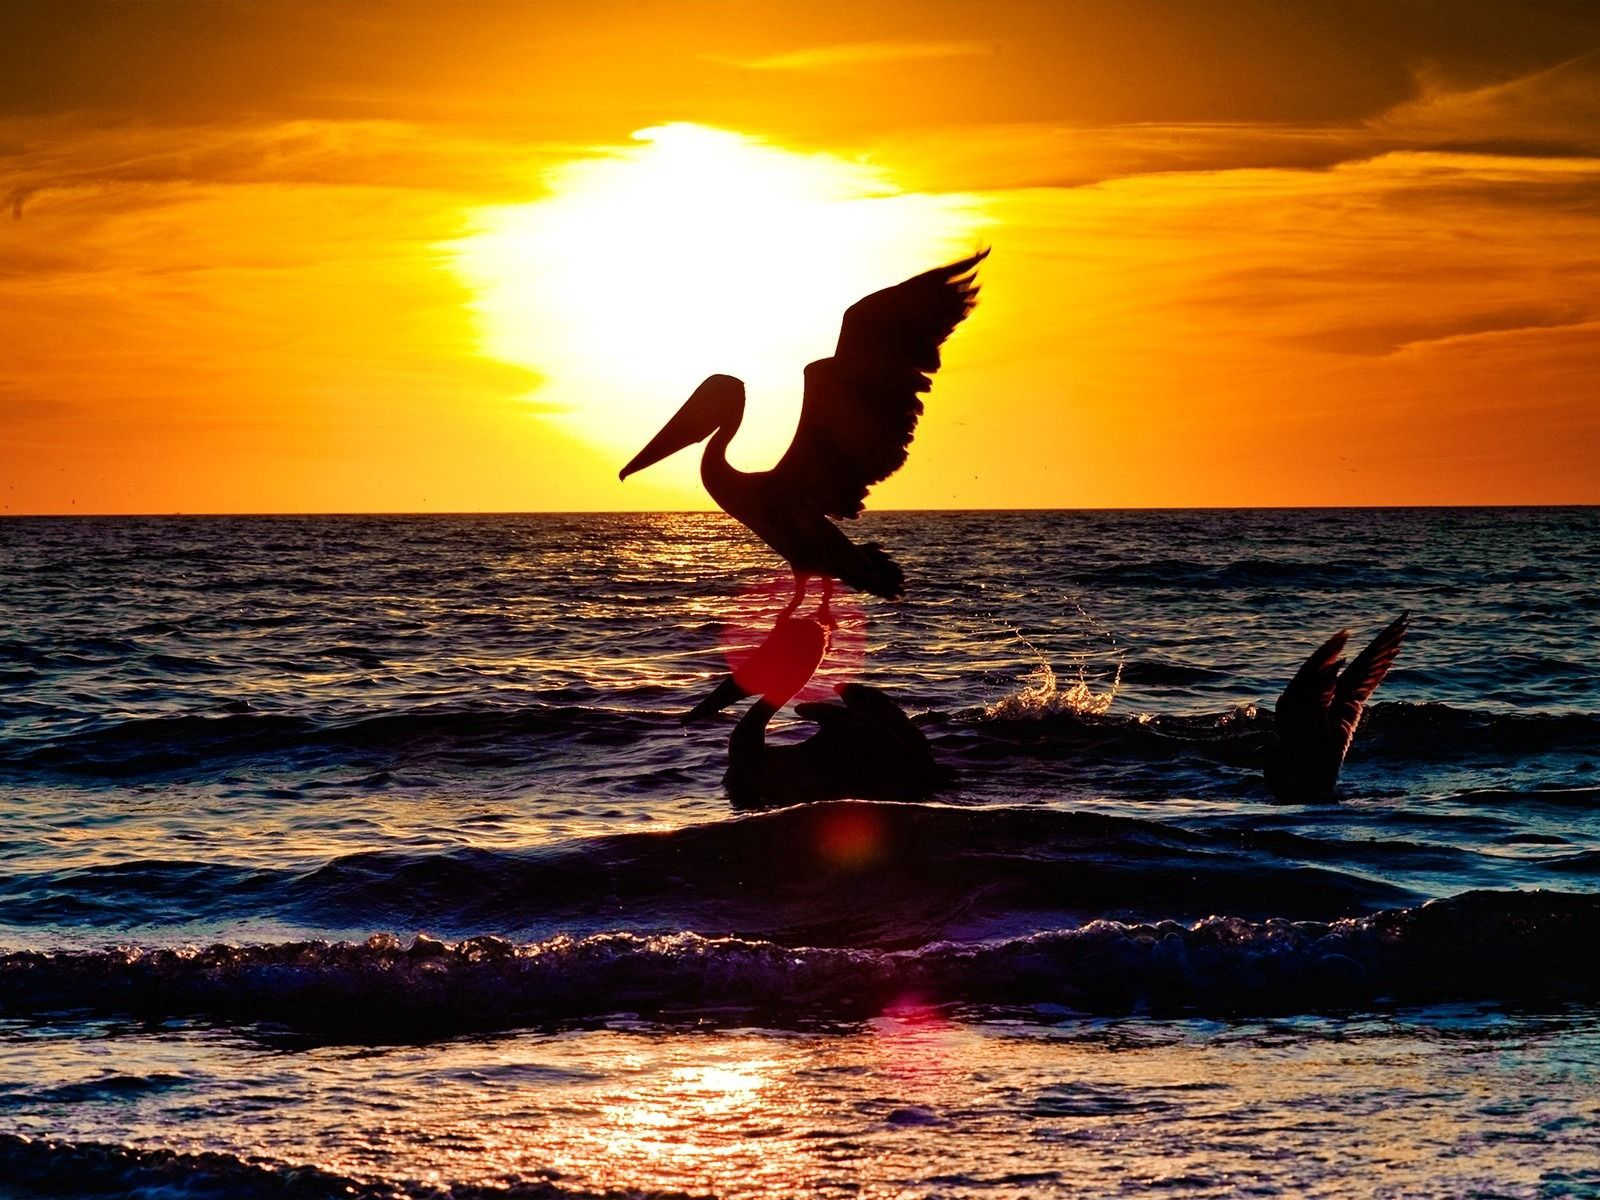 61060 download wallpaper Animals, Pelican, Bird, Flight, Night, Silhouette, Sea, Sunset screensavers and pictures for free